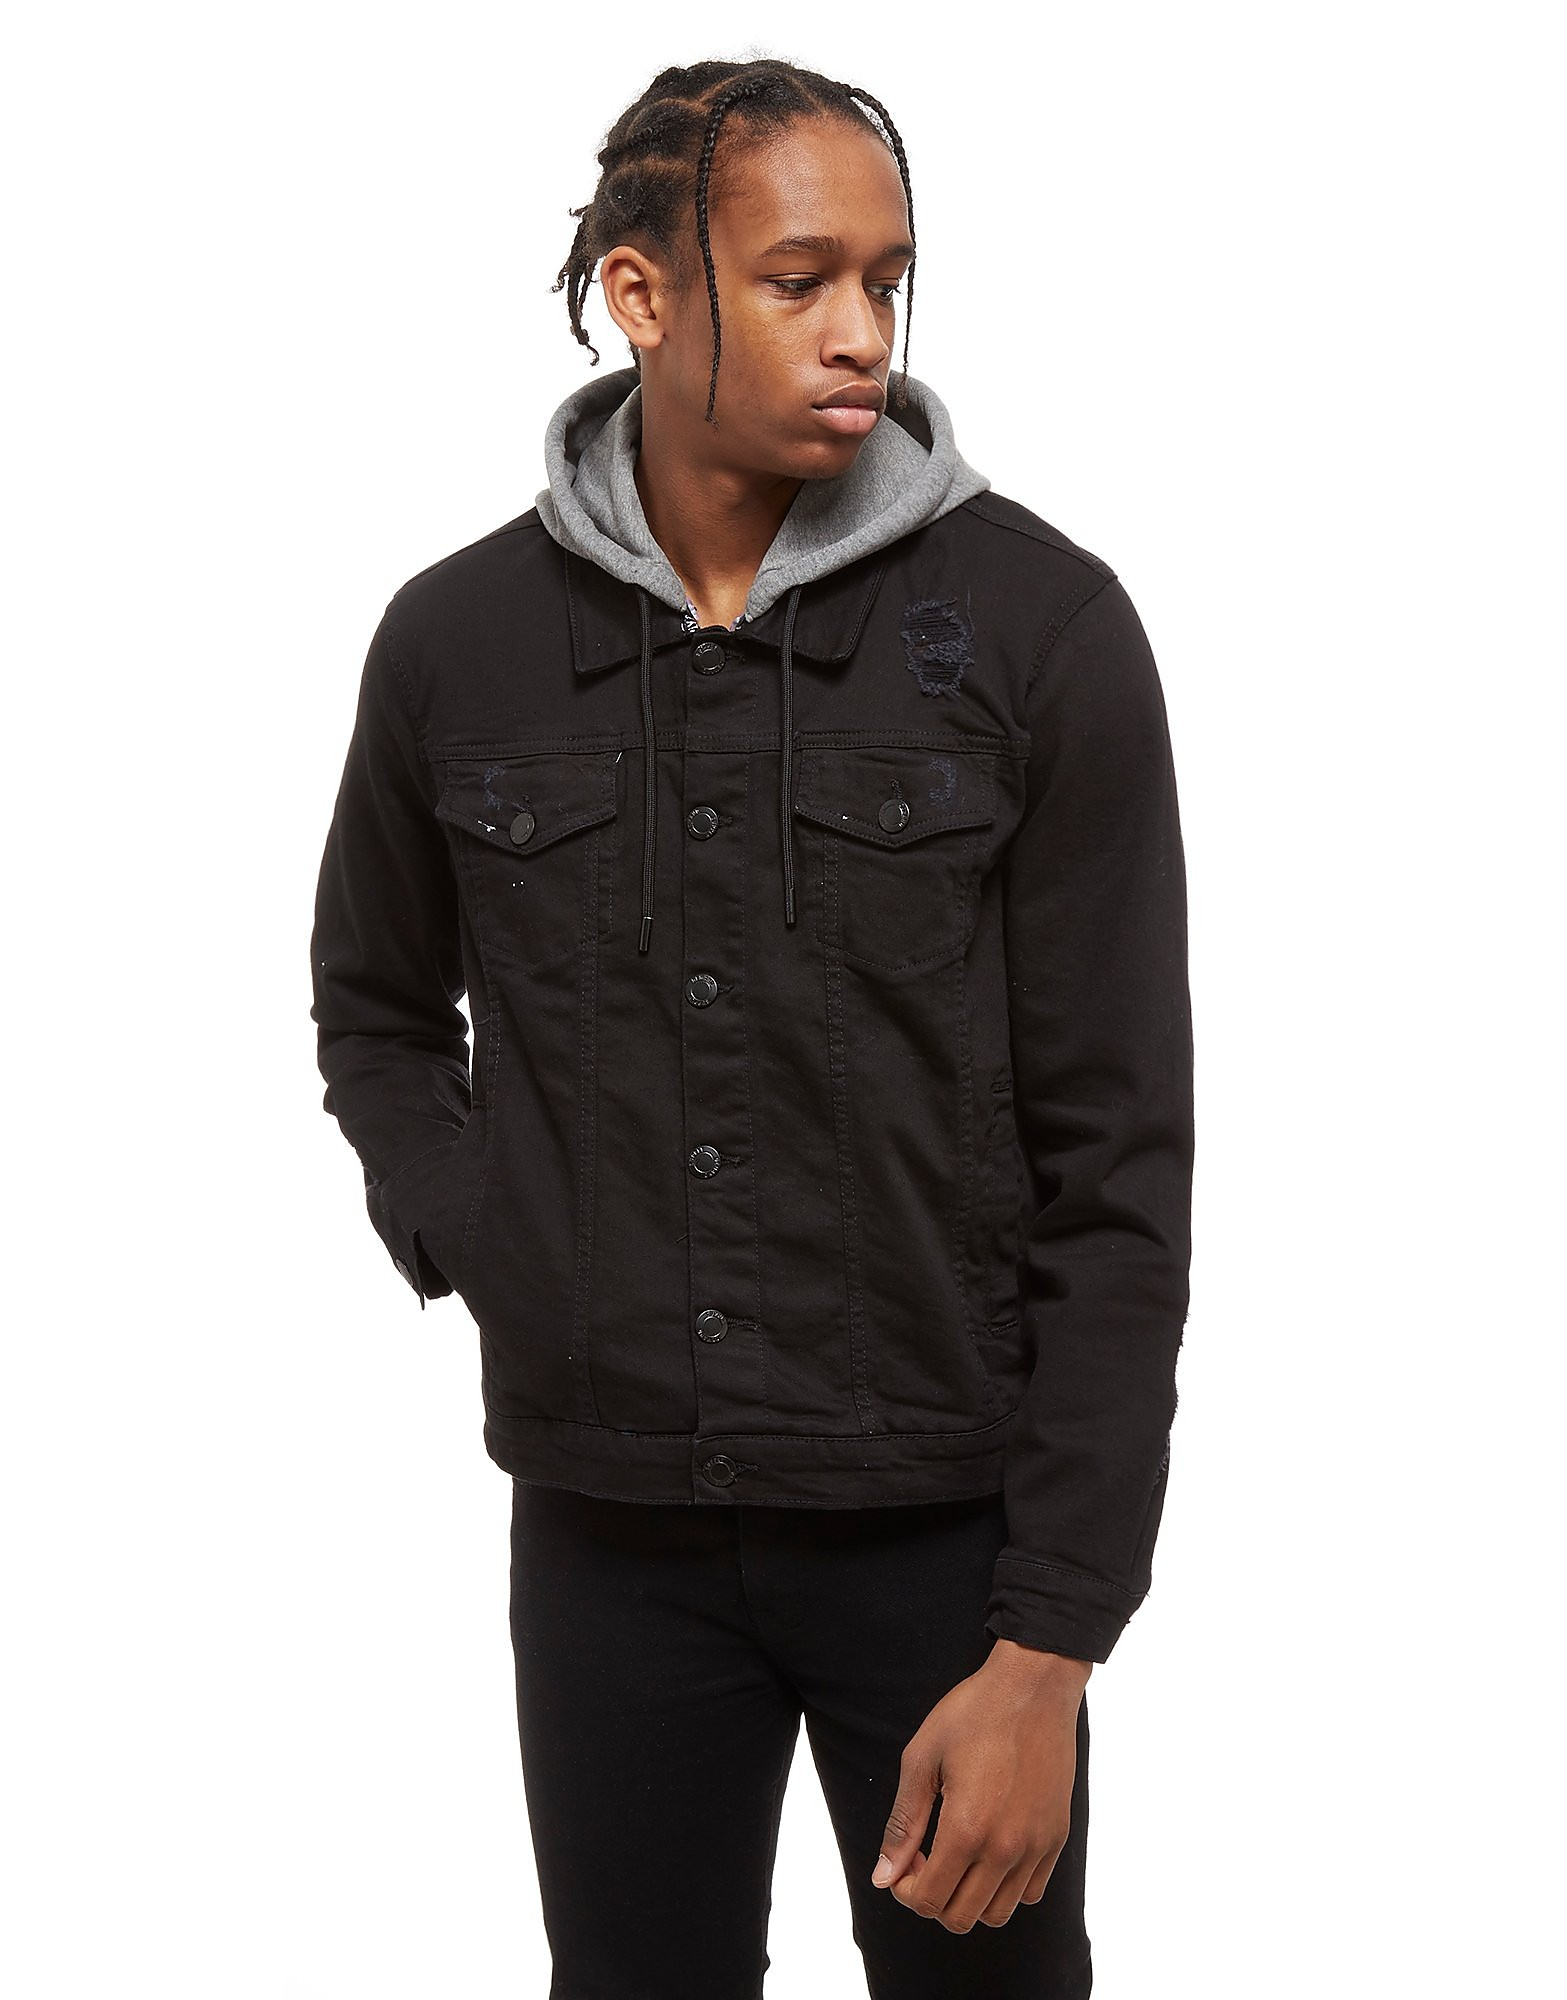 Supply & Demand Distressed Denim Jacket